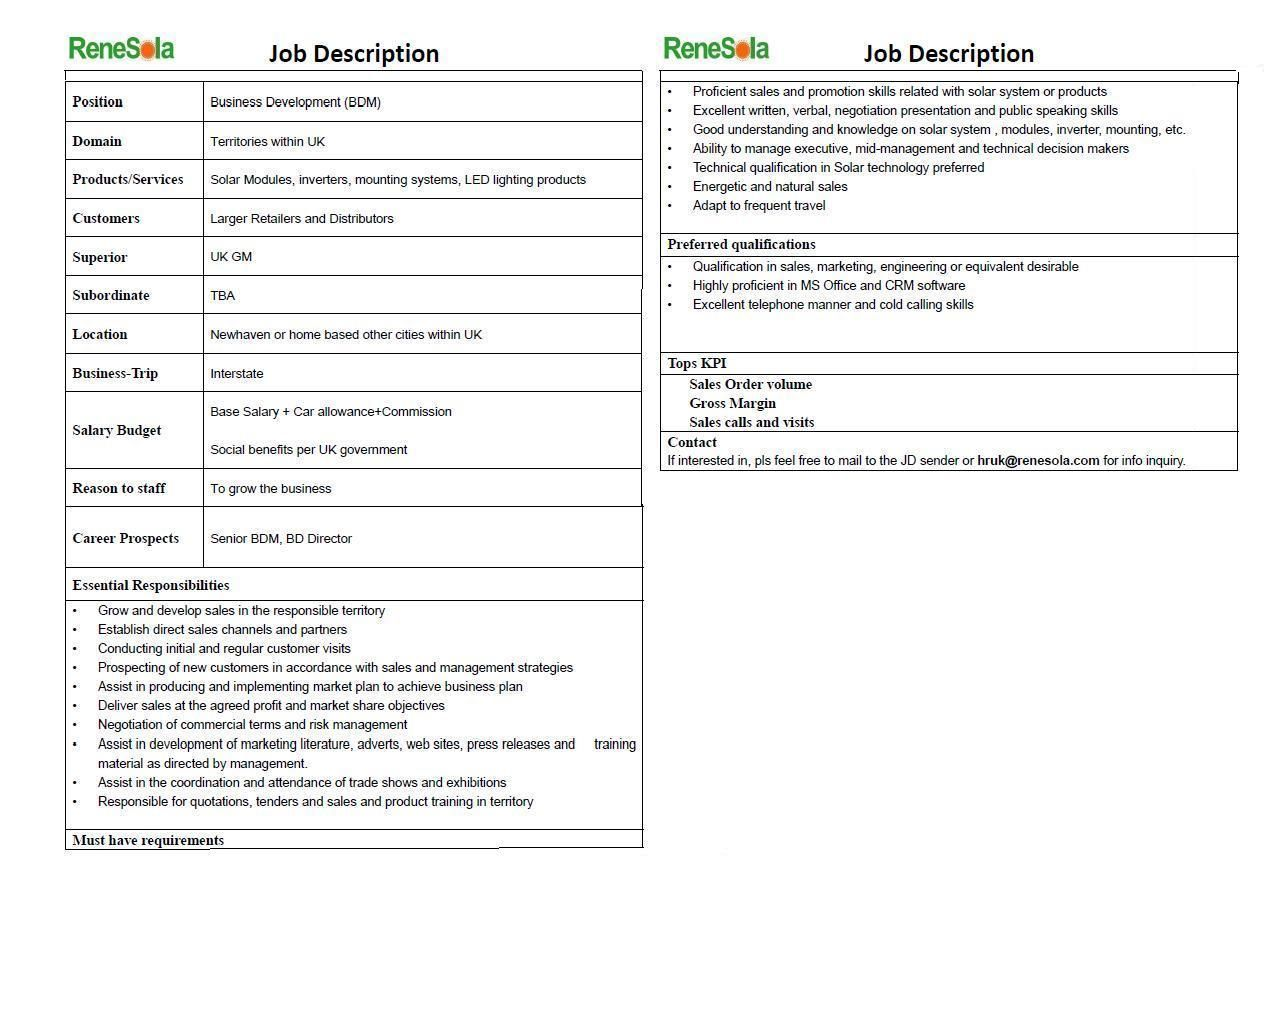 Job Description  Renesola Is Looking For Business Development